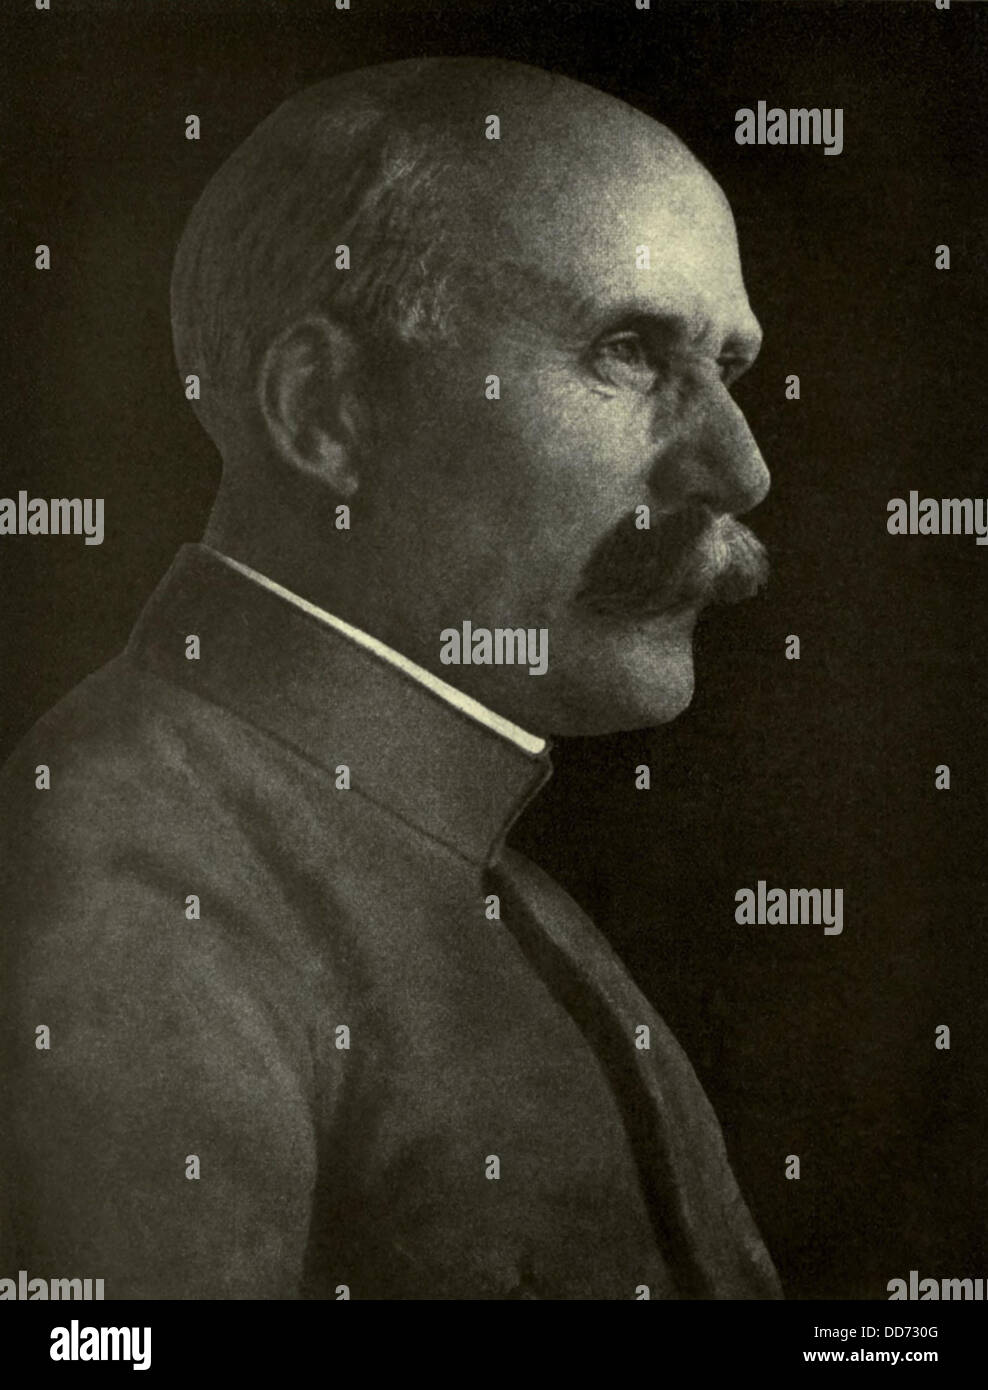 General Henri-Philippe Petain, French World War 1 commander believed modern weaponry favored defensive tactics over - Stock Image